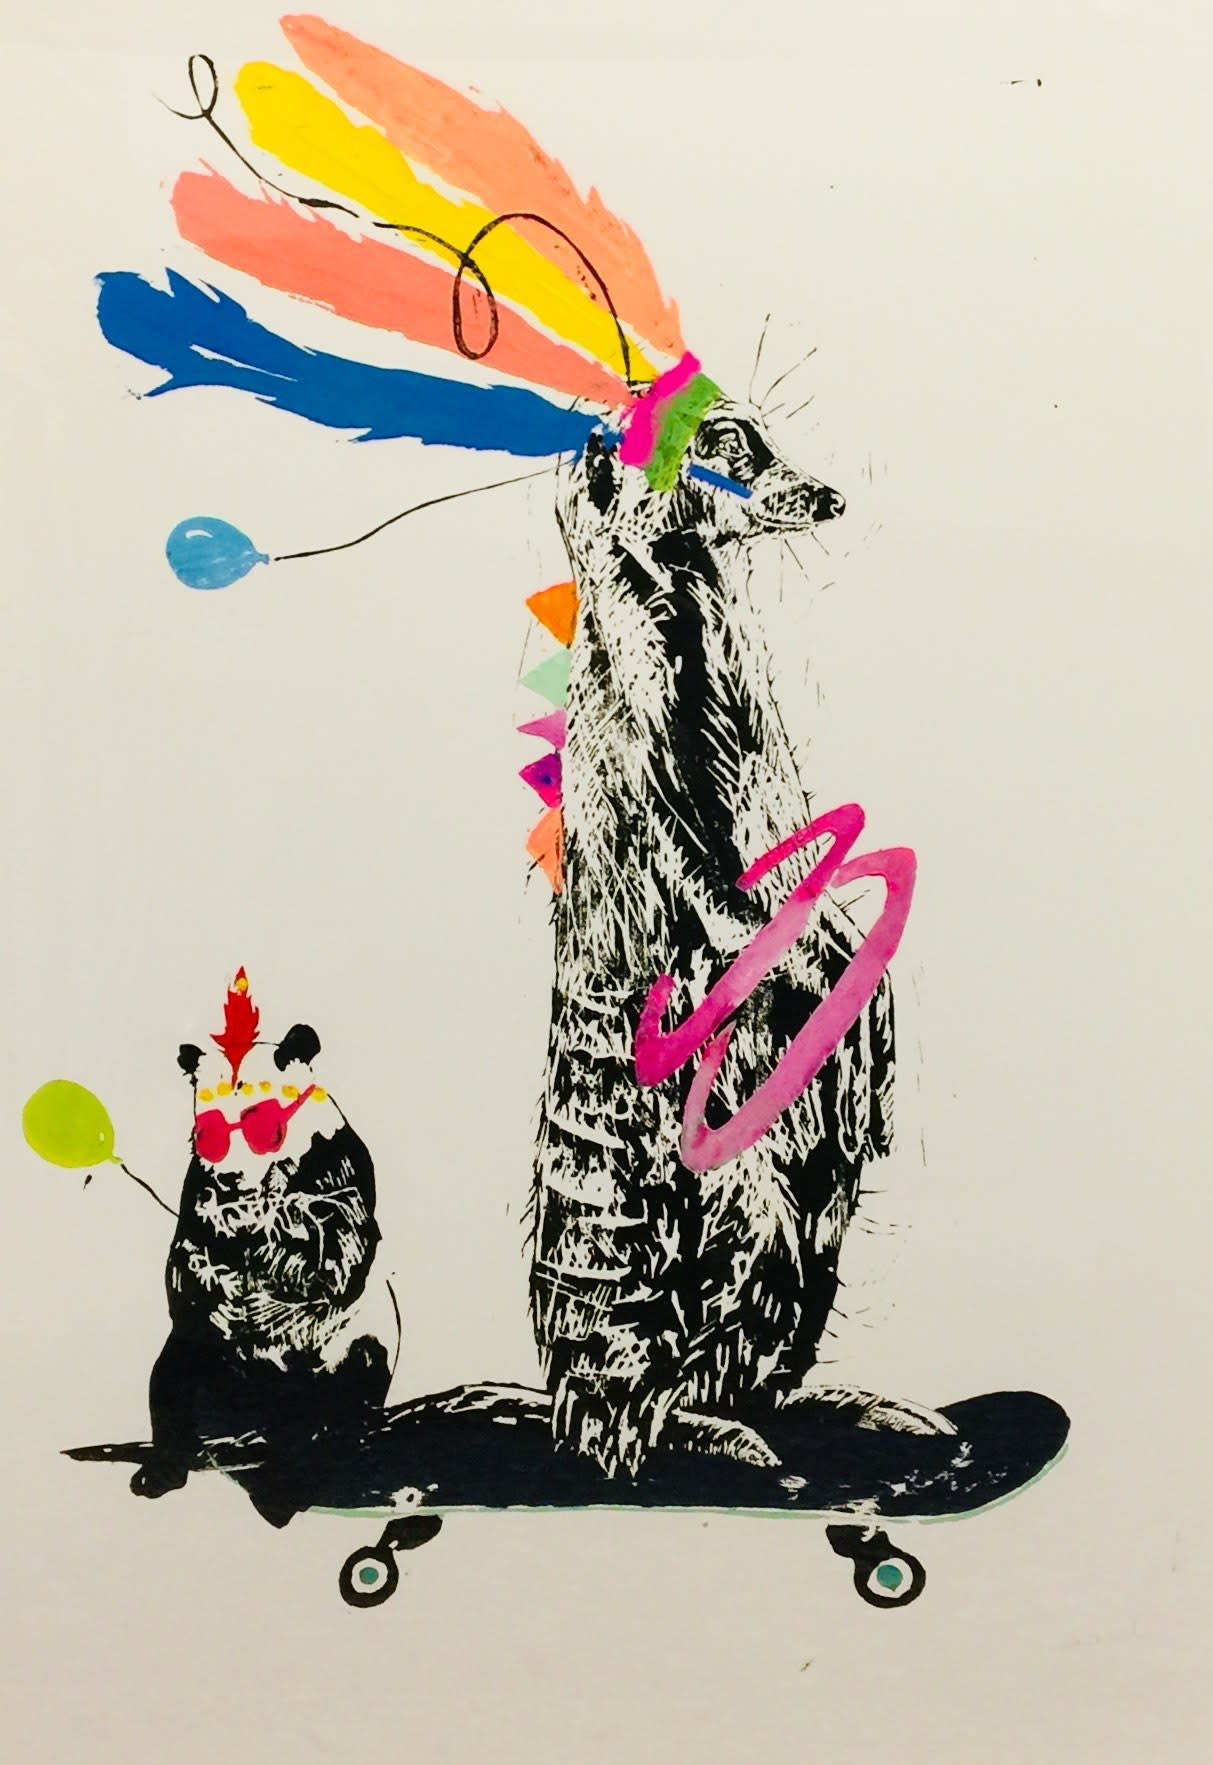 <span class=&#34;link fancybox-details-link&#34;><a href=&#34;/artists/39-millie-mccallum/works/2326-millie-mccallum-meerkat-with-panda-on-skateboard/&#34;>View Detail Page</a></span><div class=&#34;artist&#34;><strong>Millie McCallum</strong></div> <div class=&#34;title&#34;><em>Meerkat with Panda on Skateboard</em></div> <div class=&#34;medium&#34;>Linocut 1/1 (framed)</div> <div class=&#34;dimensions&#34;>100 x 70 cm </div><div class=&#34;copyright_line&#34;>Copyright The Artist</div>